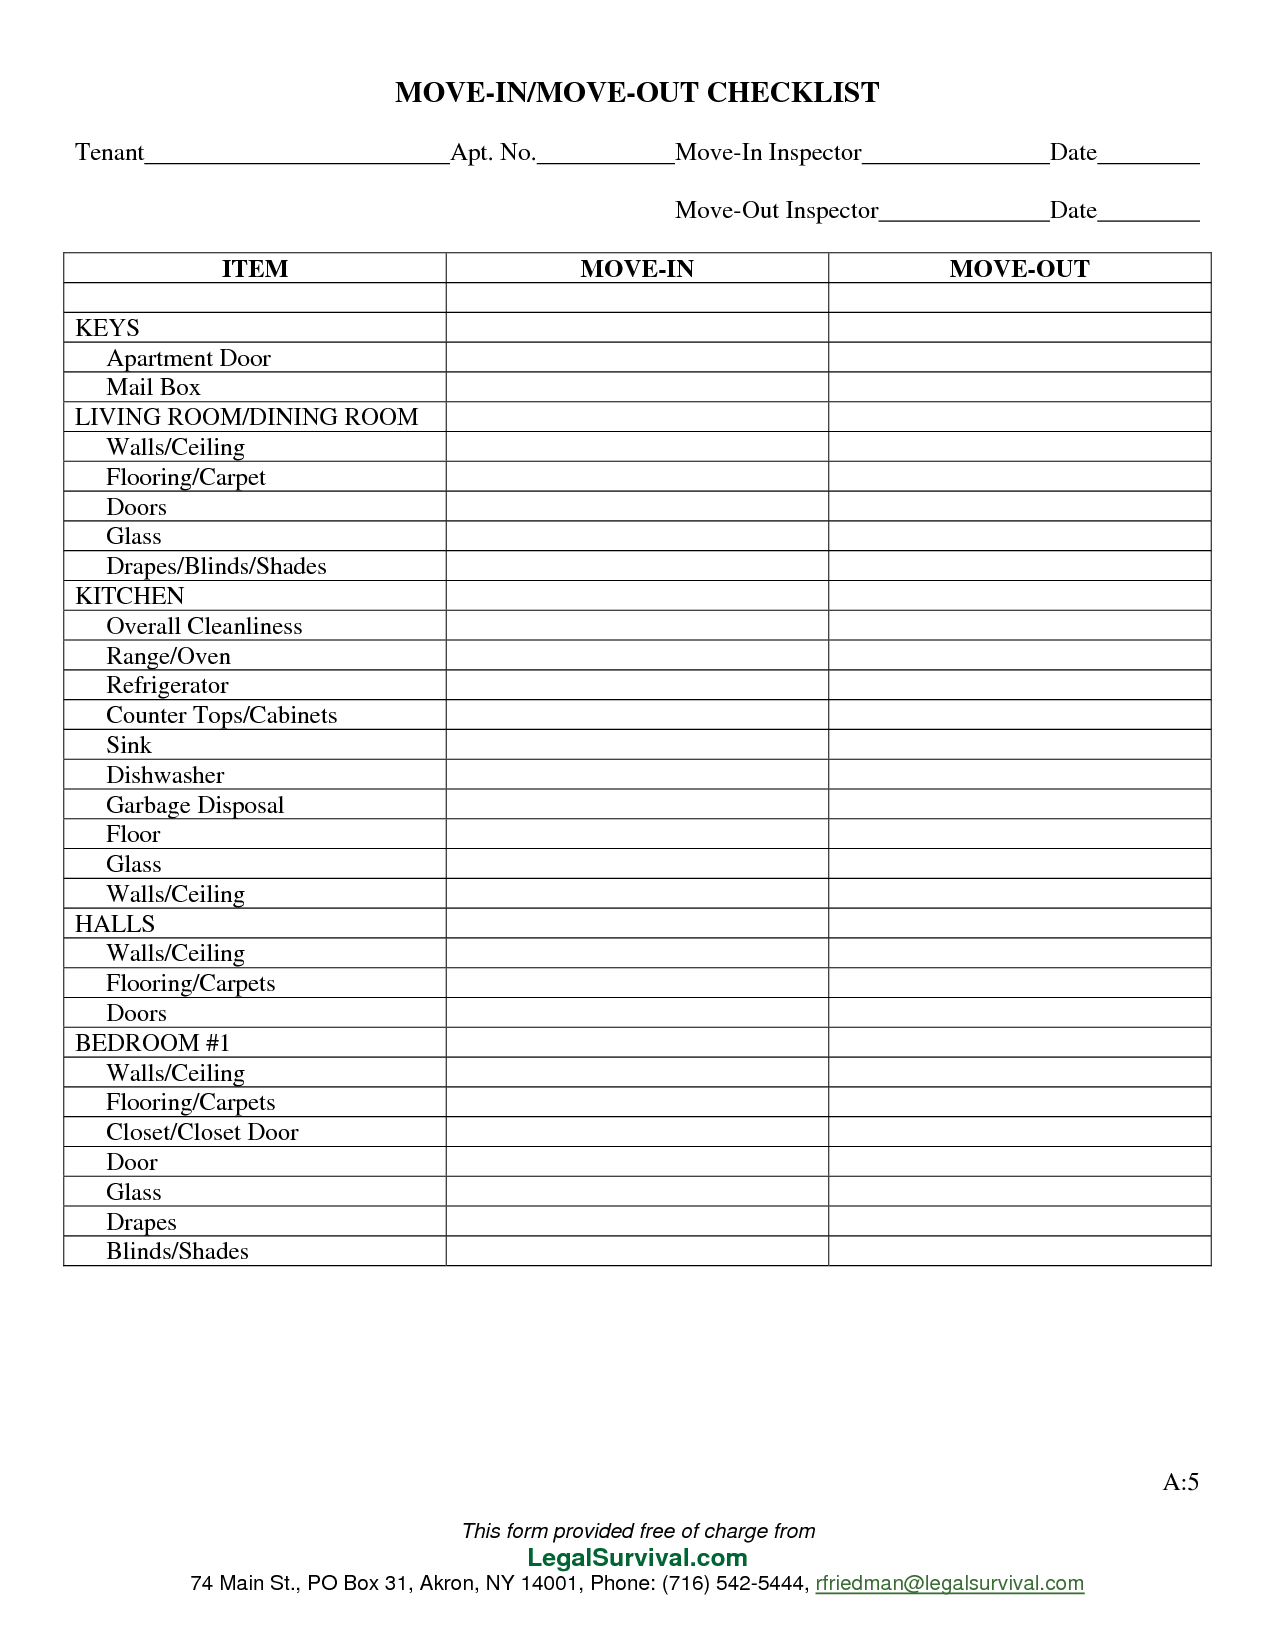 checklist template for cleaning an office cover letter checklist template for cleaning an office office cleaning checklist to do list organizer printable cleaning checklist